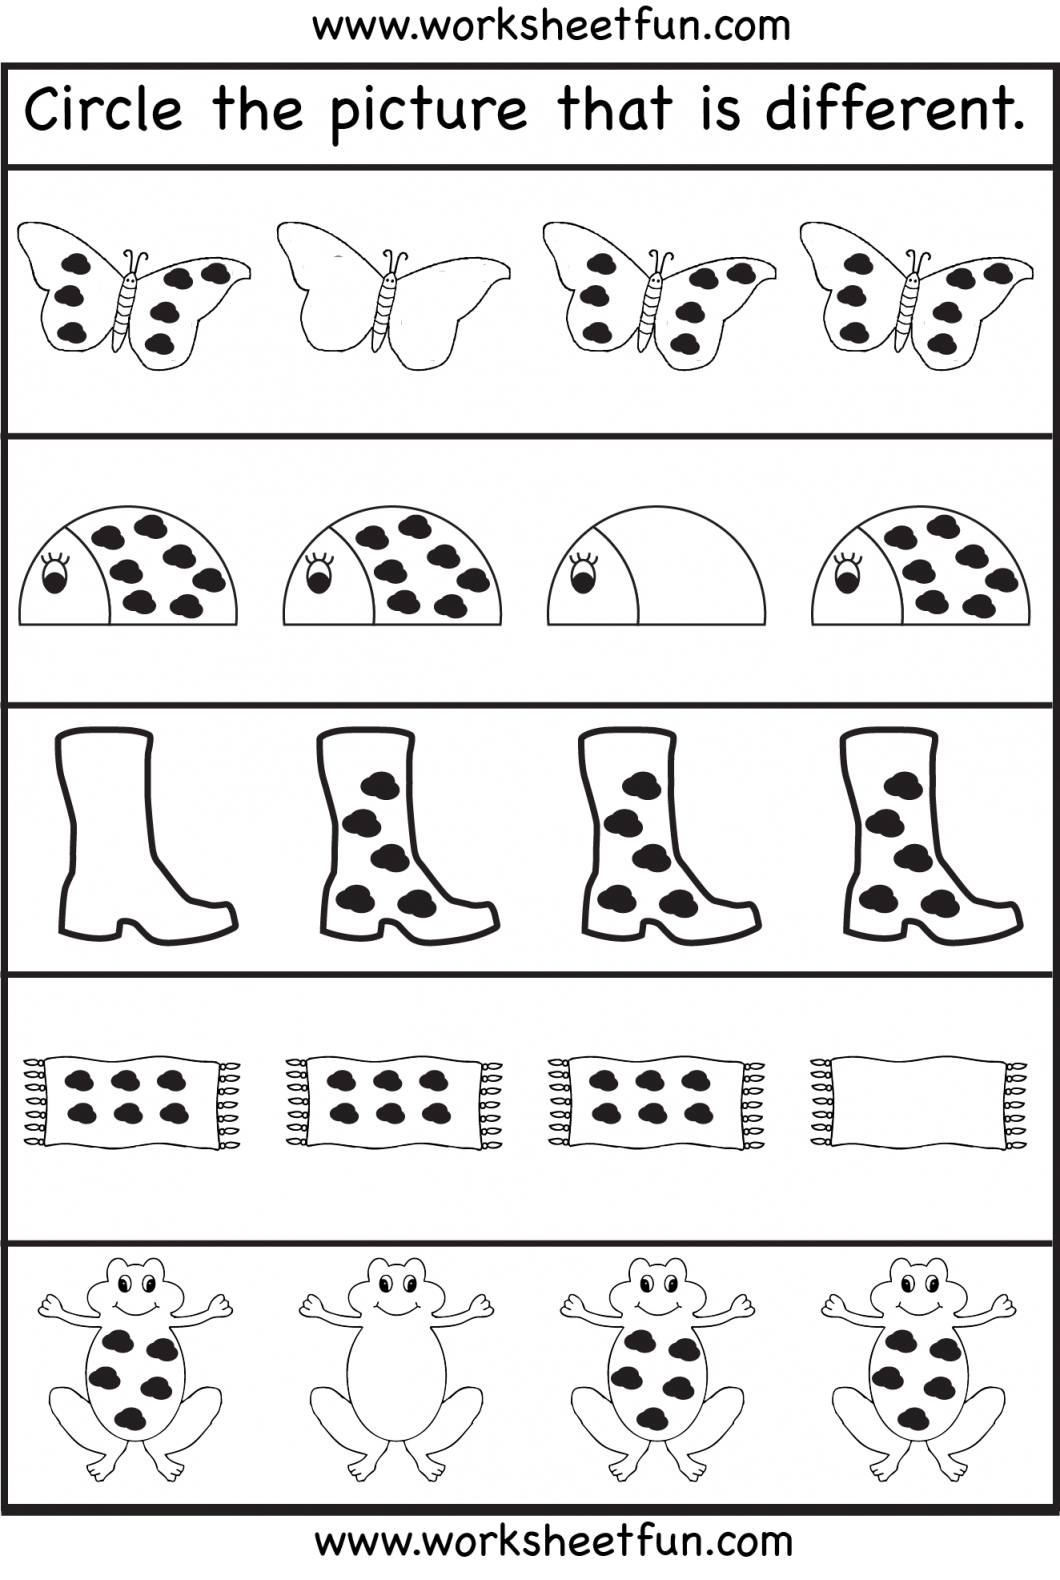 Educational Activities For 3 Year Olds Printable – With Preschool   Free Printable Worksheets For 3 Year Olds